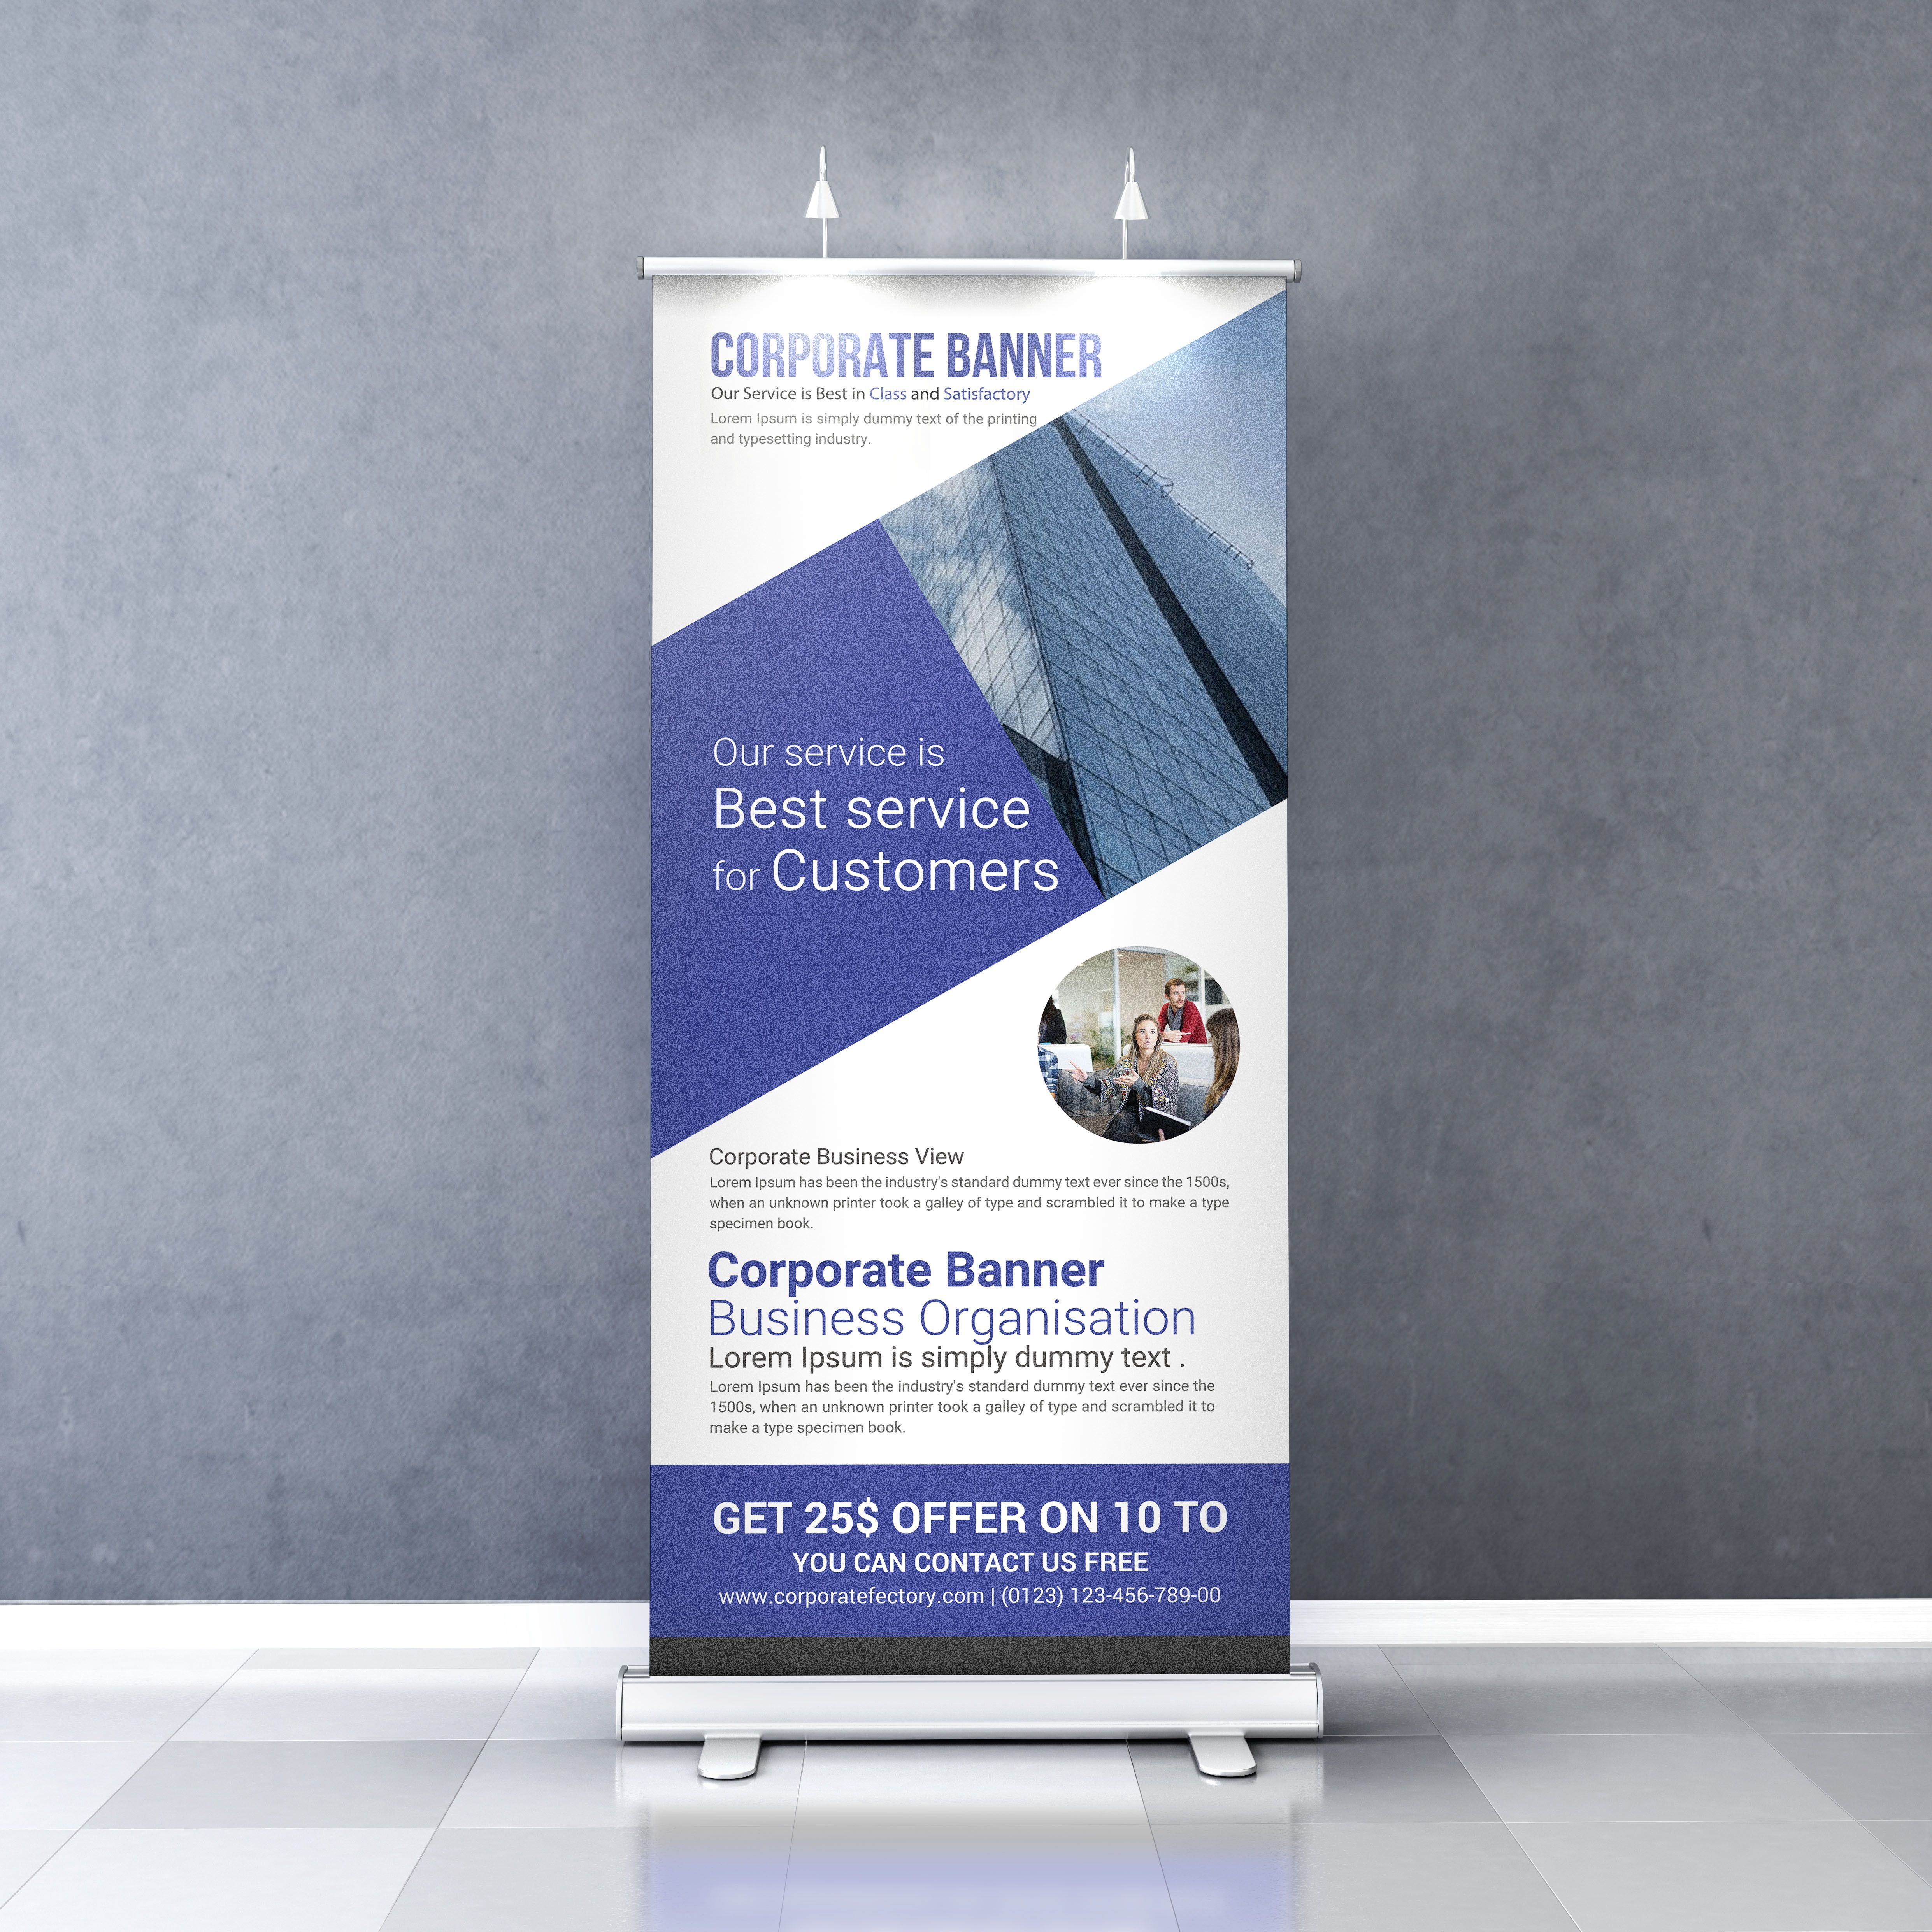 Check Out My Behance Project Free Corporate Roll Up Banner Template Https